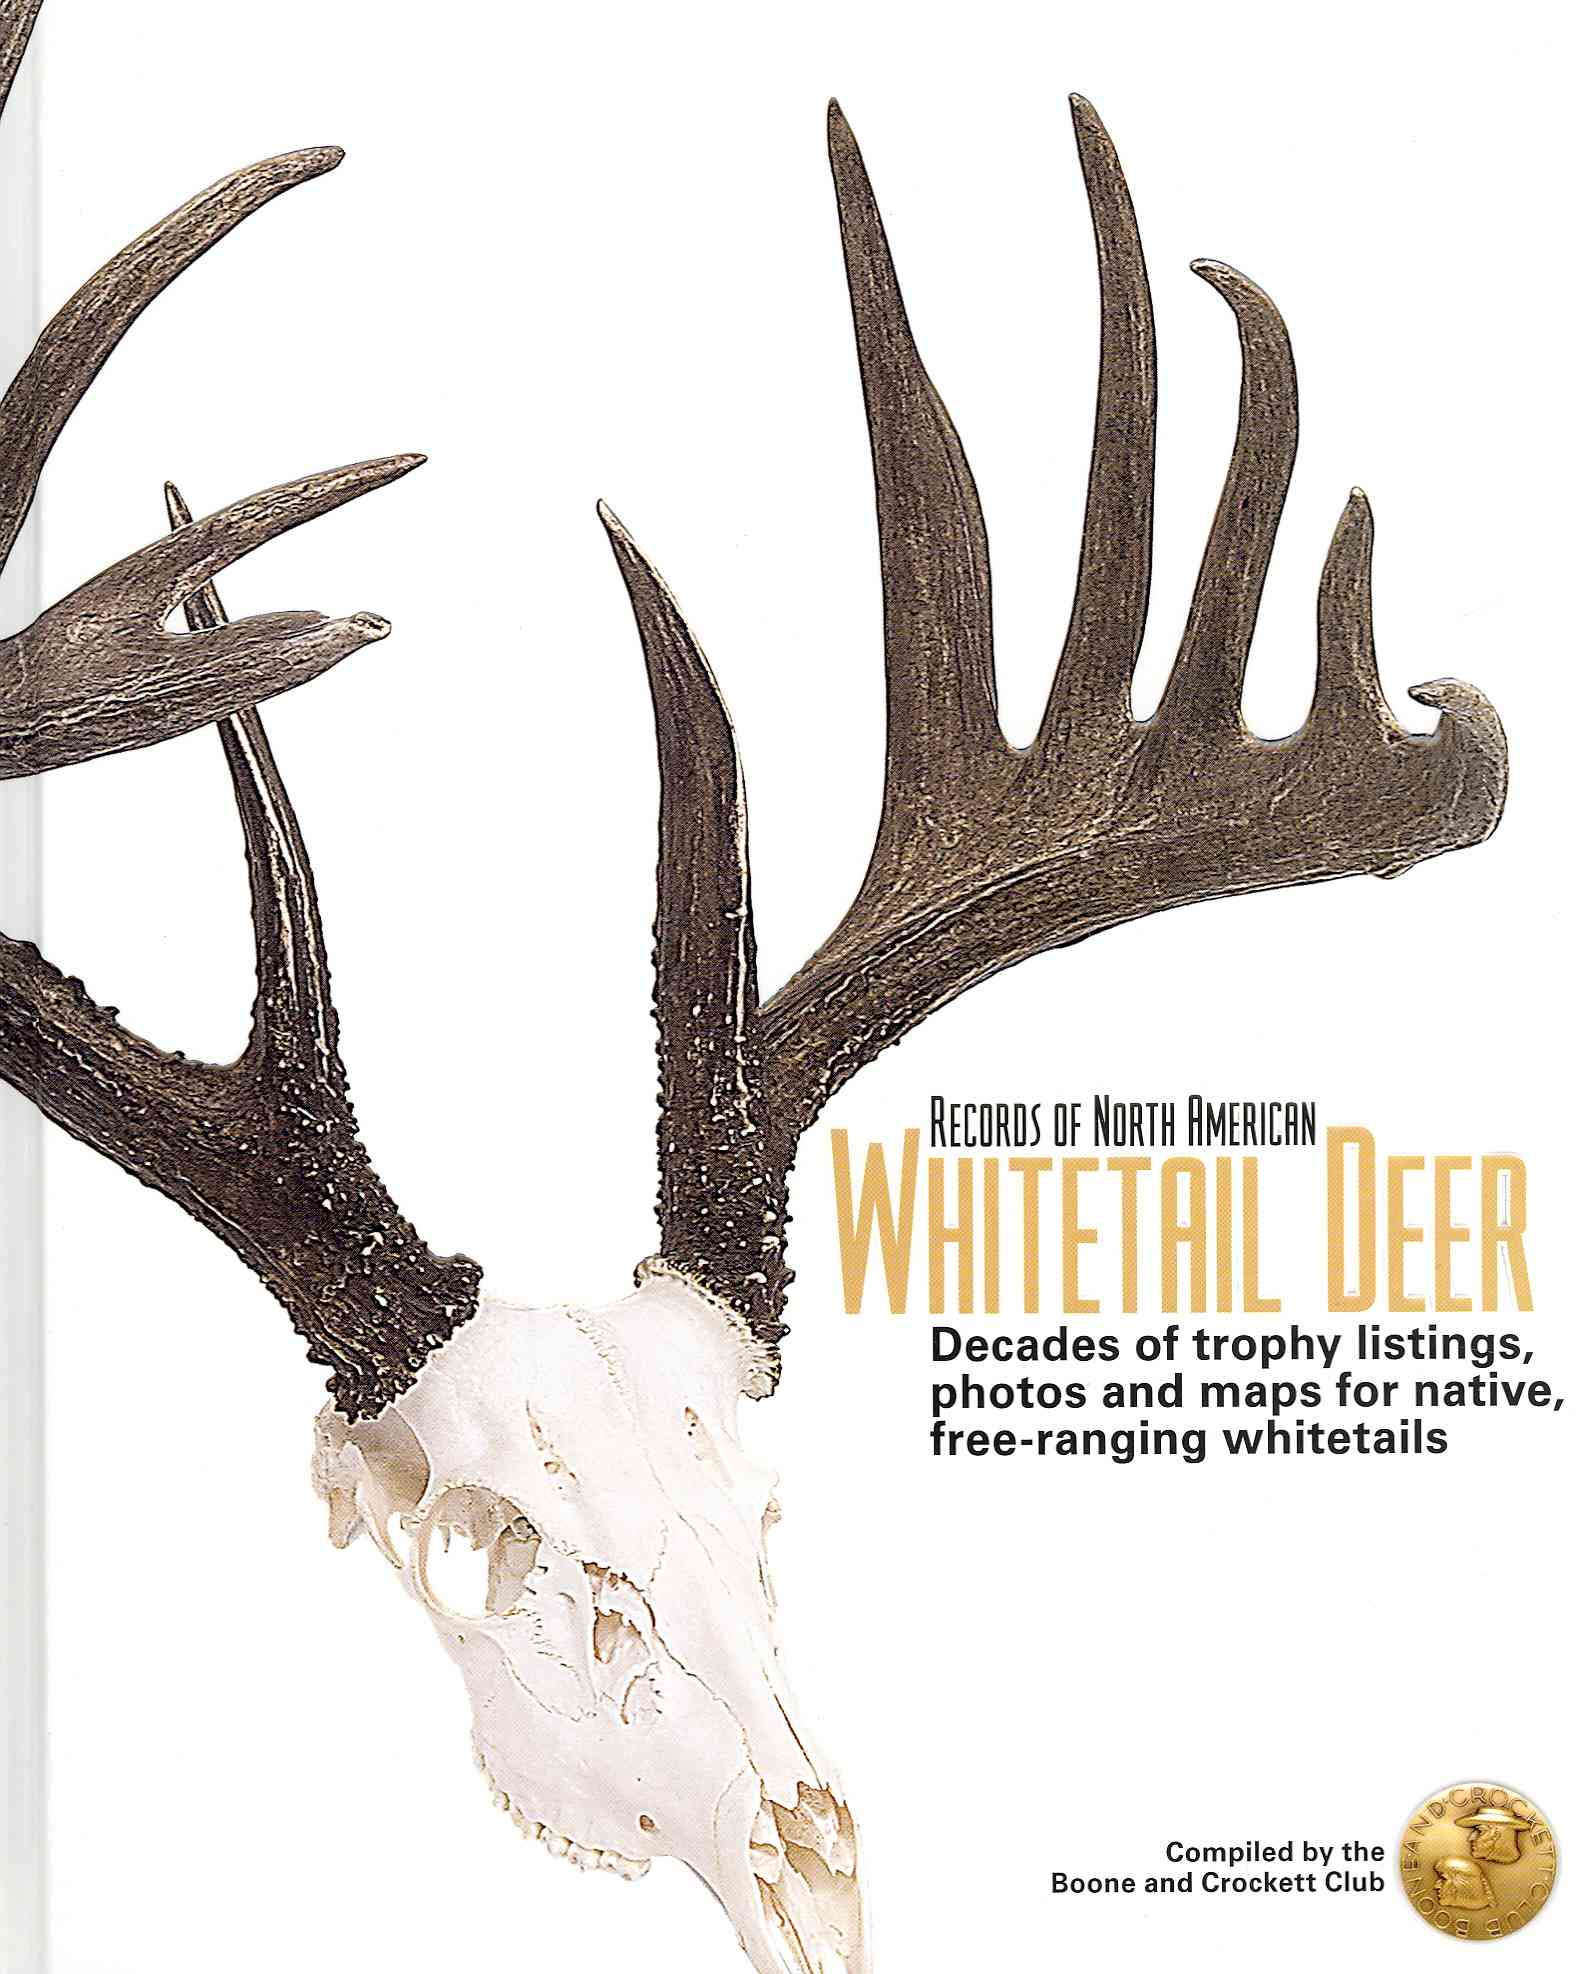 Records of North American Whitetail Deer: Decades of Trophy Listings, Photos, and Maps for Native, Free-Ranging Whitetails